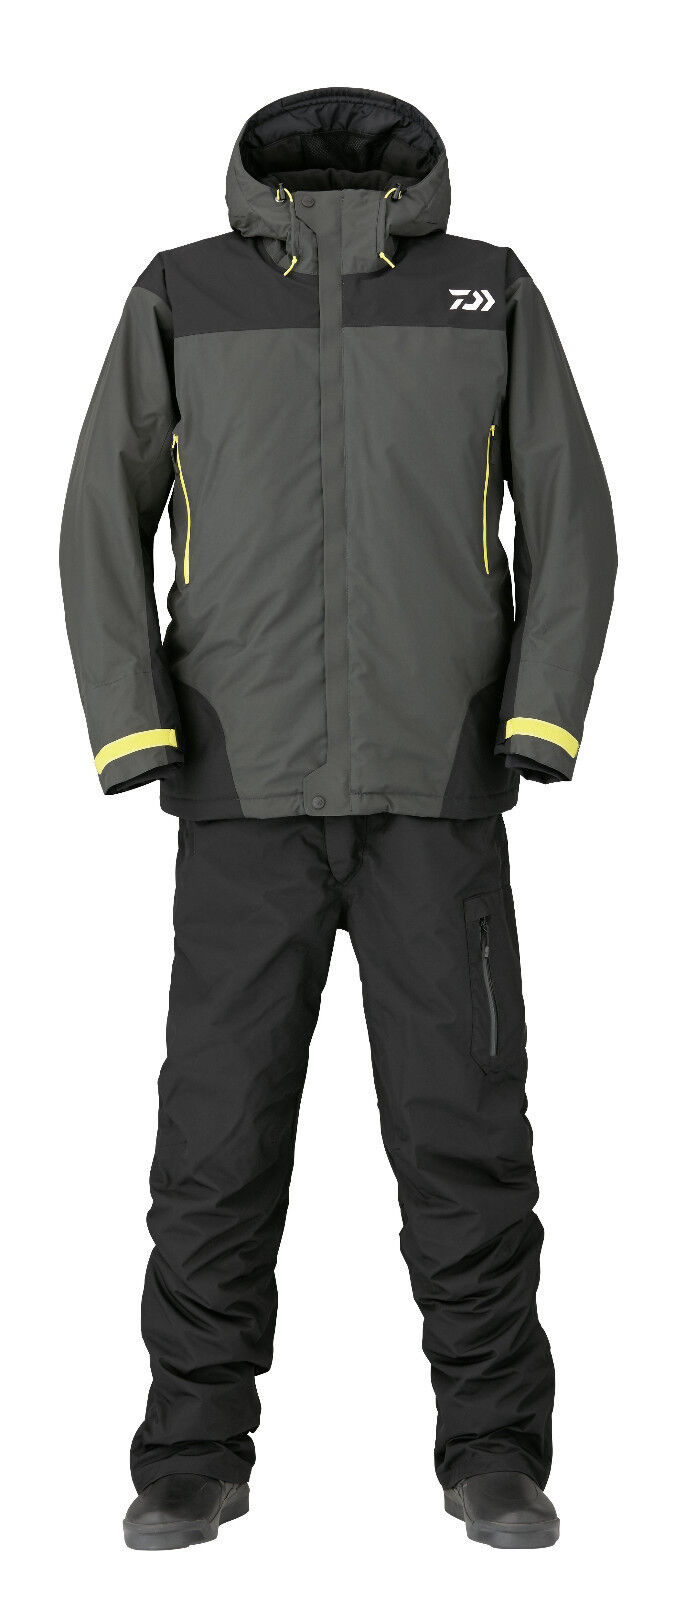 Daiwa Rainmax Winter Suit DW-3206 Winteranzug Thermoanzug Thermo Anzug f. Winter